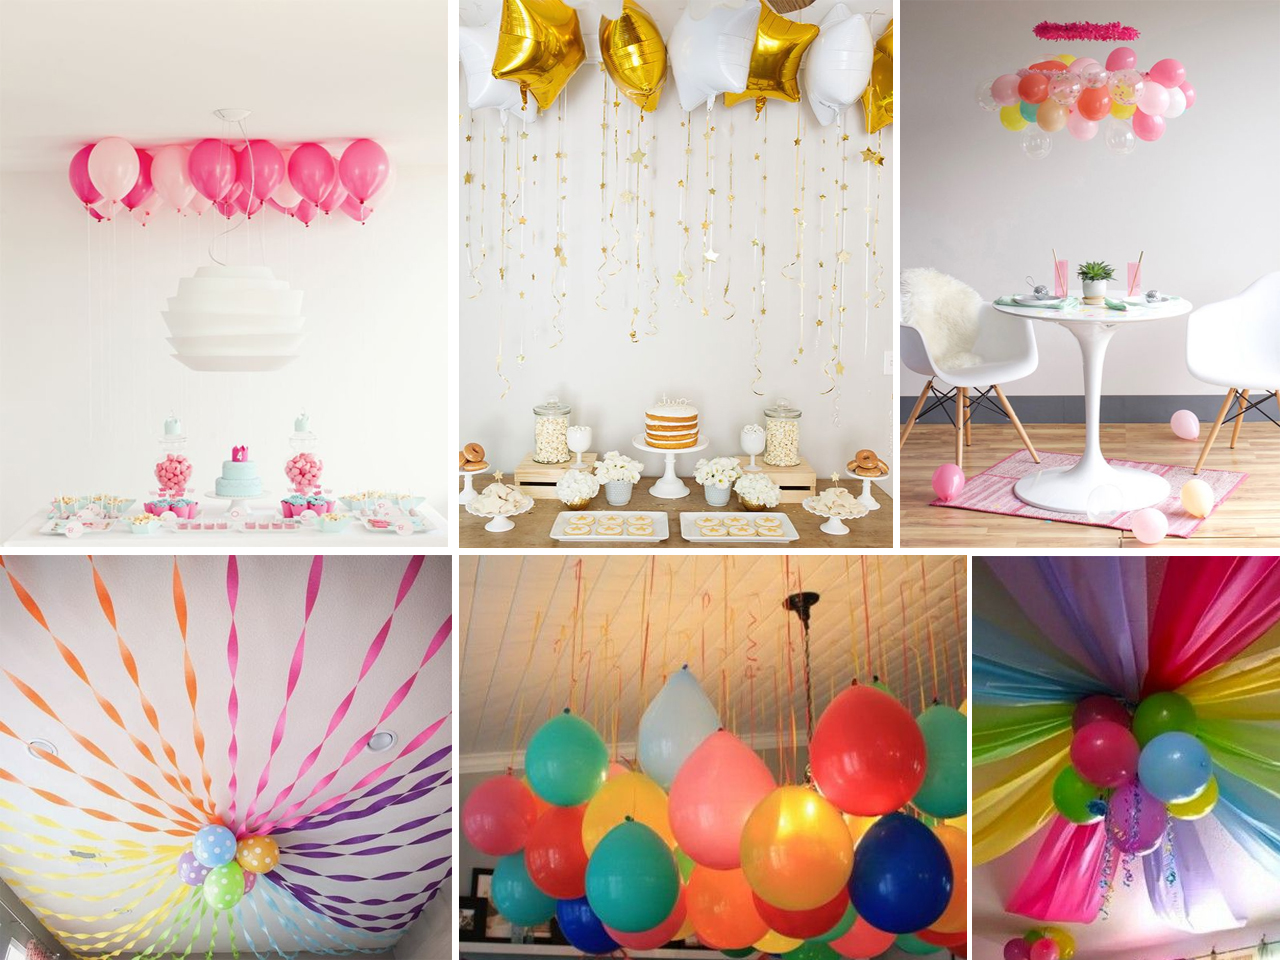 Descubre c mo decorar con globos con estas fant sticas ideas - Como decorar un cabecero ...